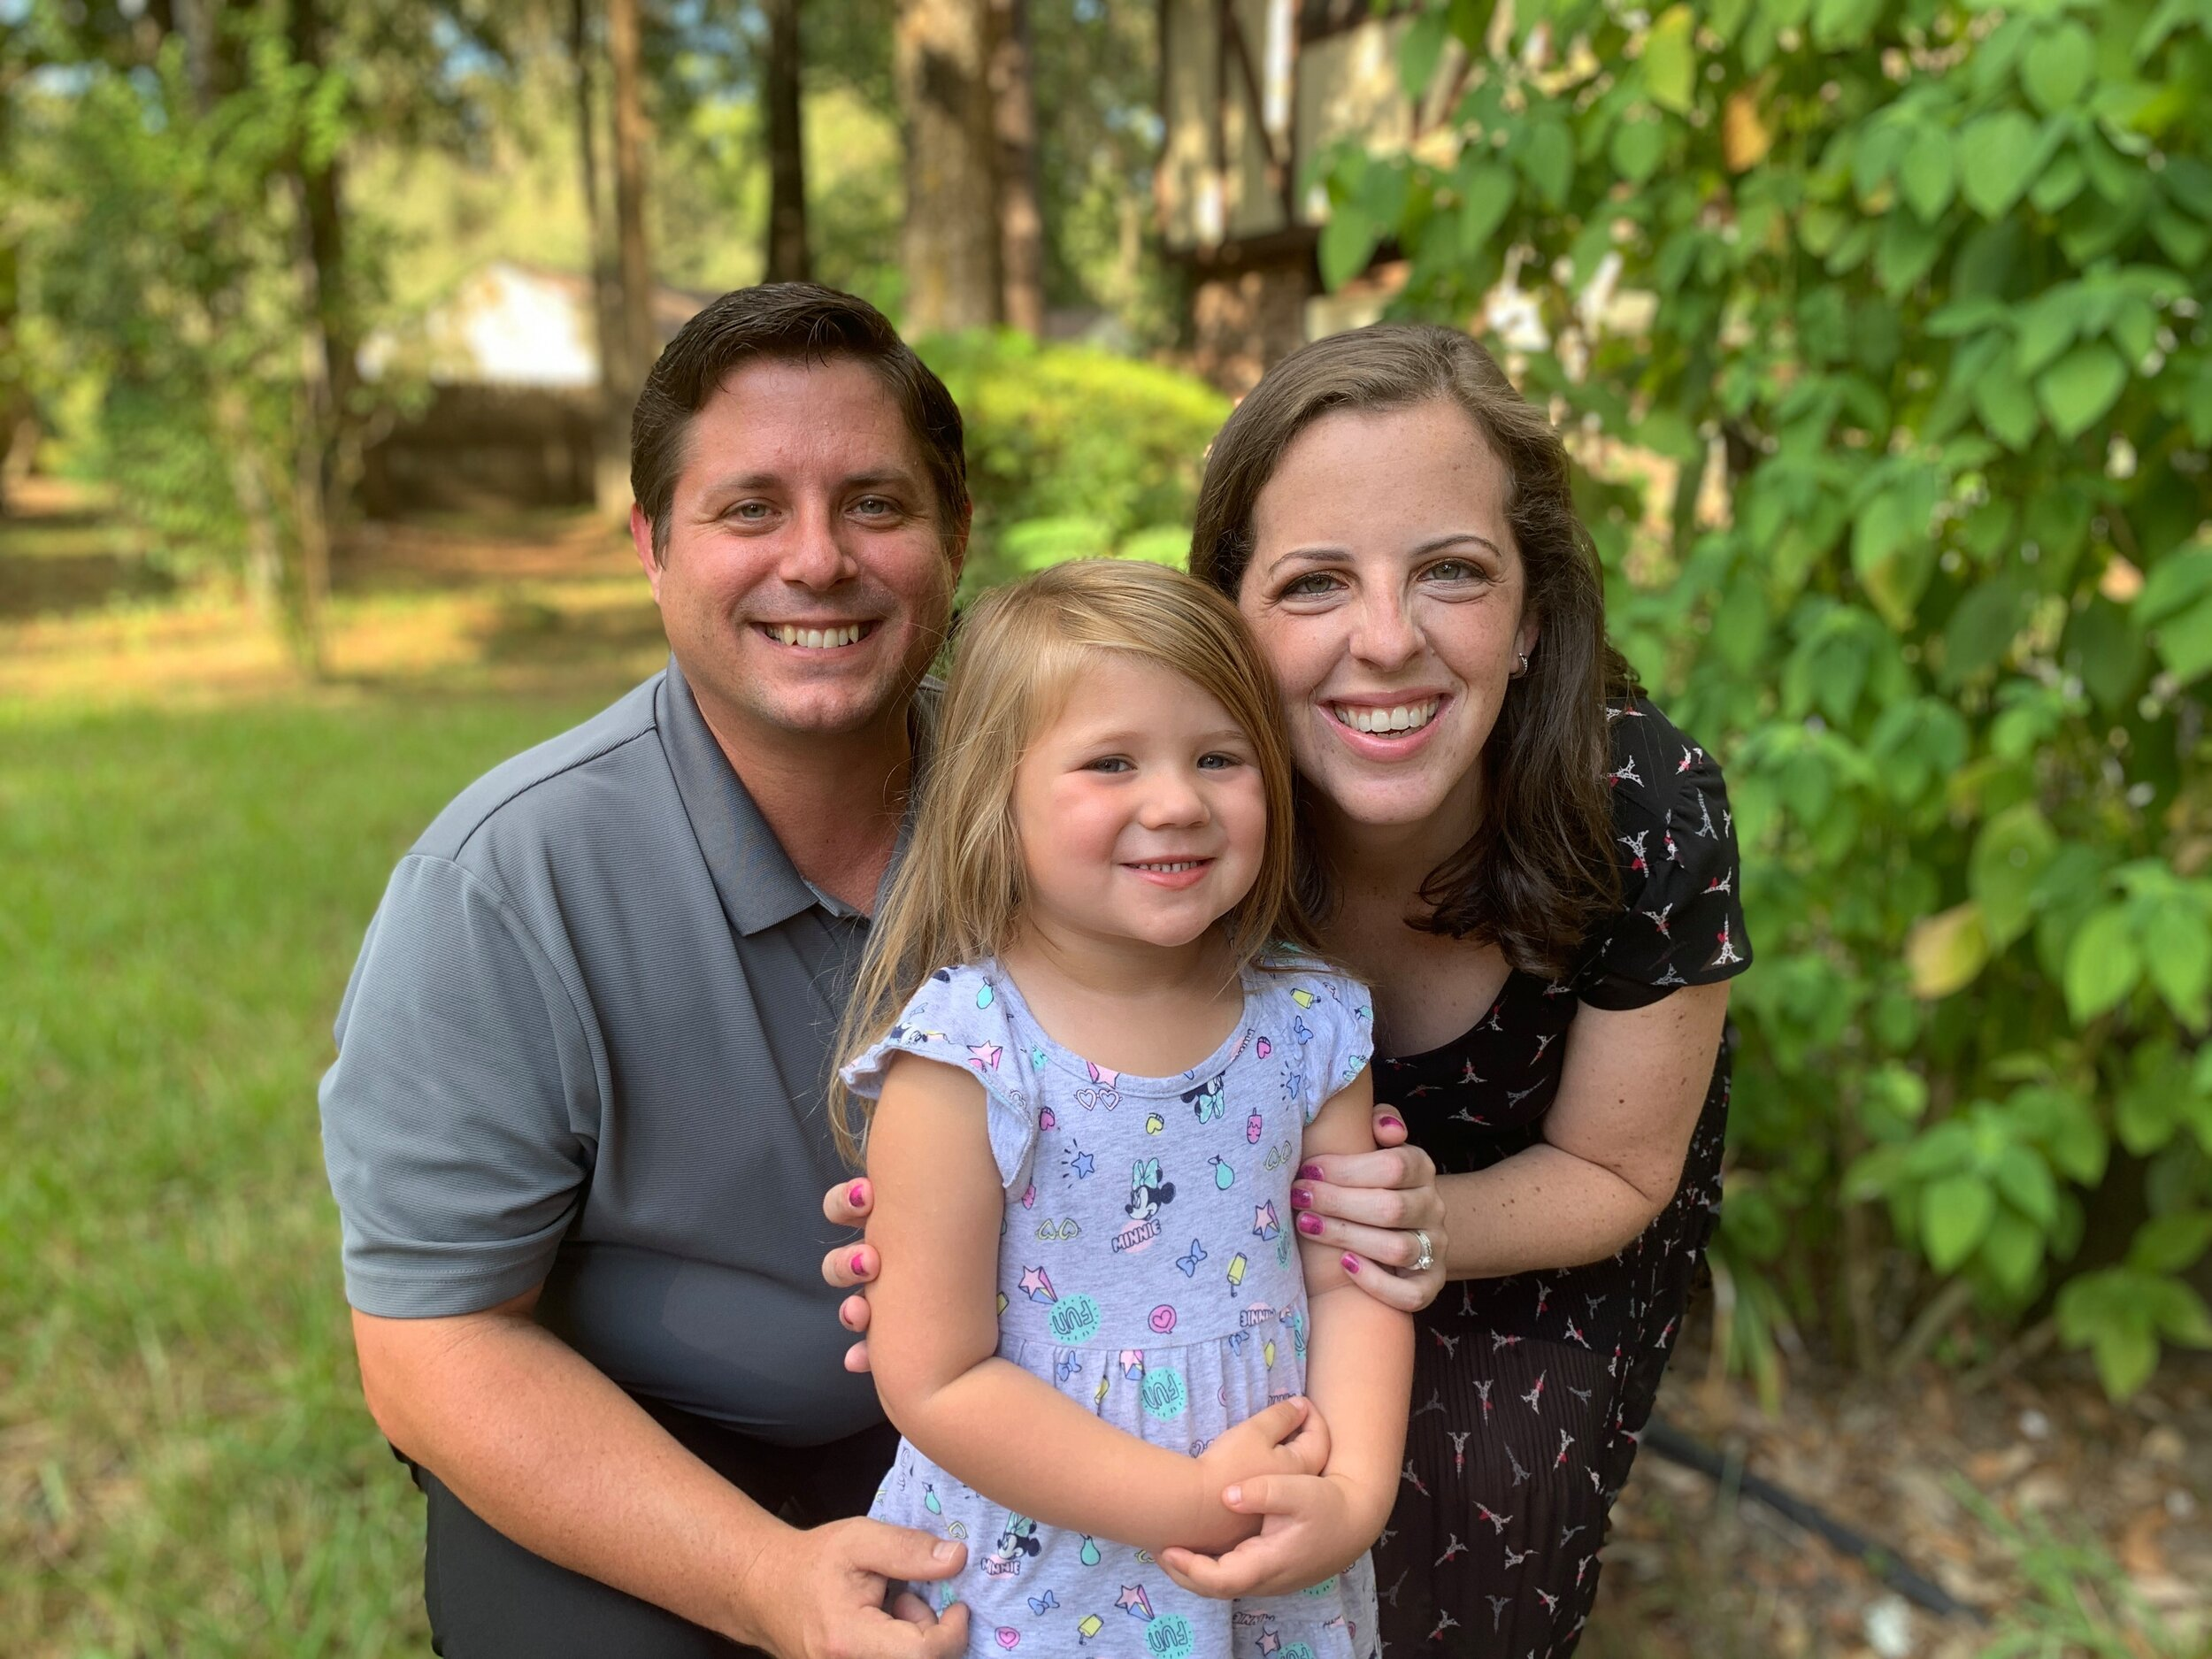 Brittany and Bill are a happy, loving couple who are hoping to adopt a child